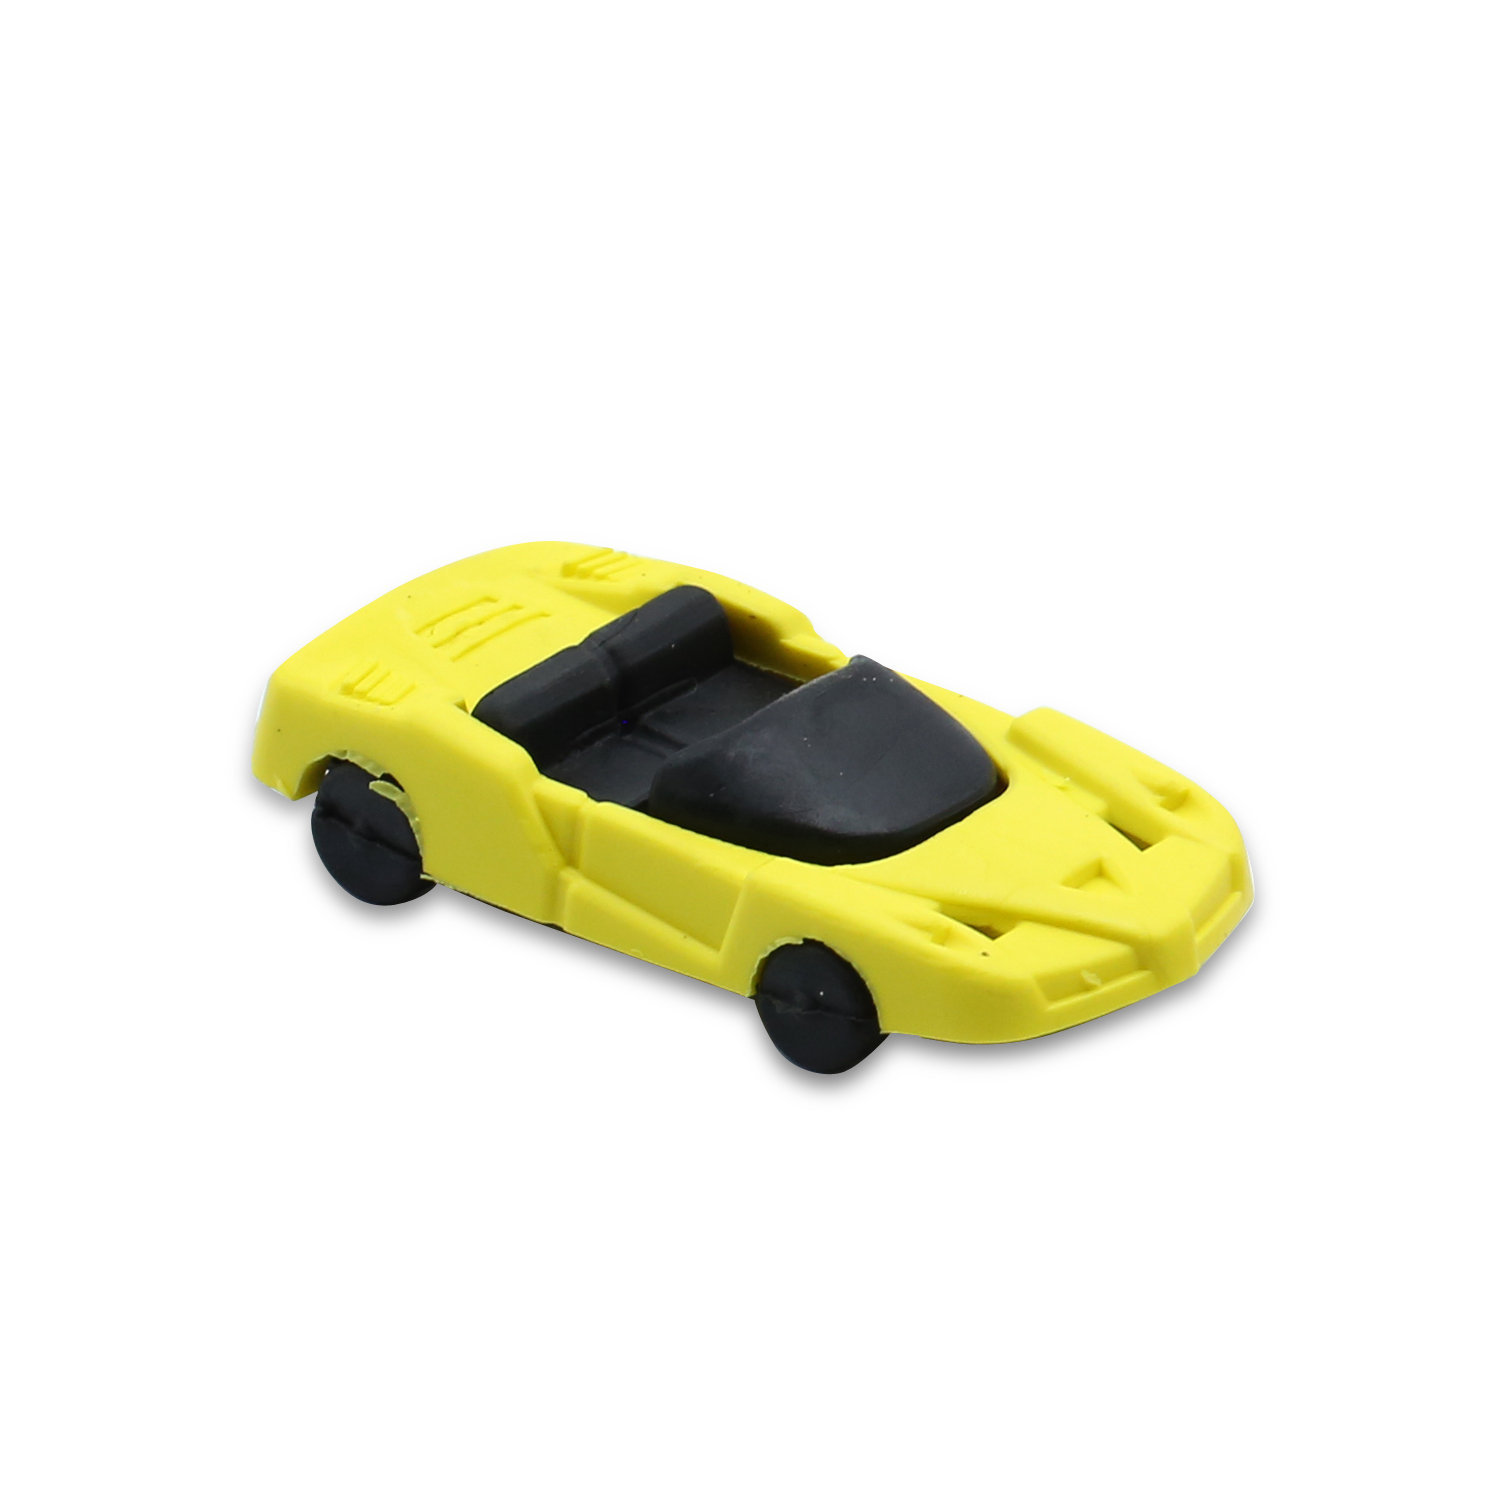 Loufor Car Eraser 5262 Yellow